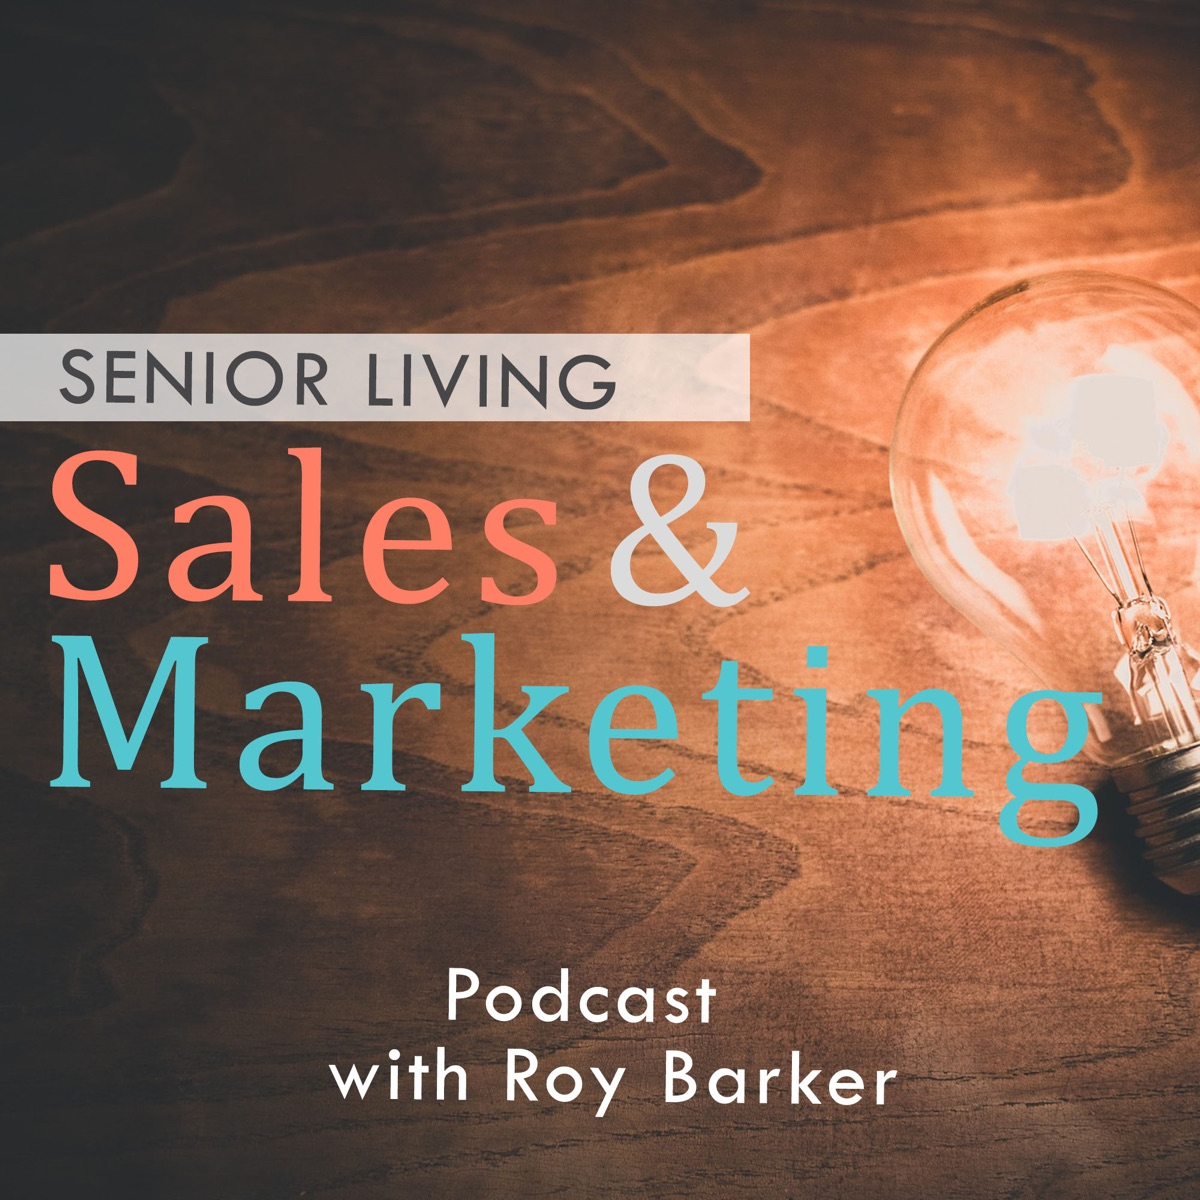 Senior Living Sales and Marketing's Podcast